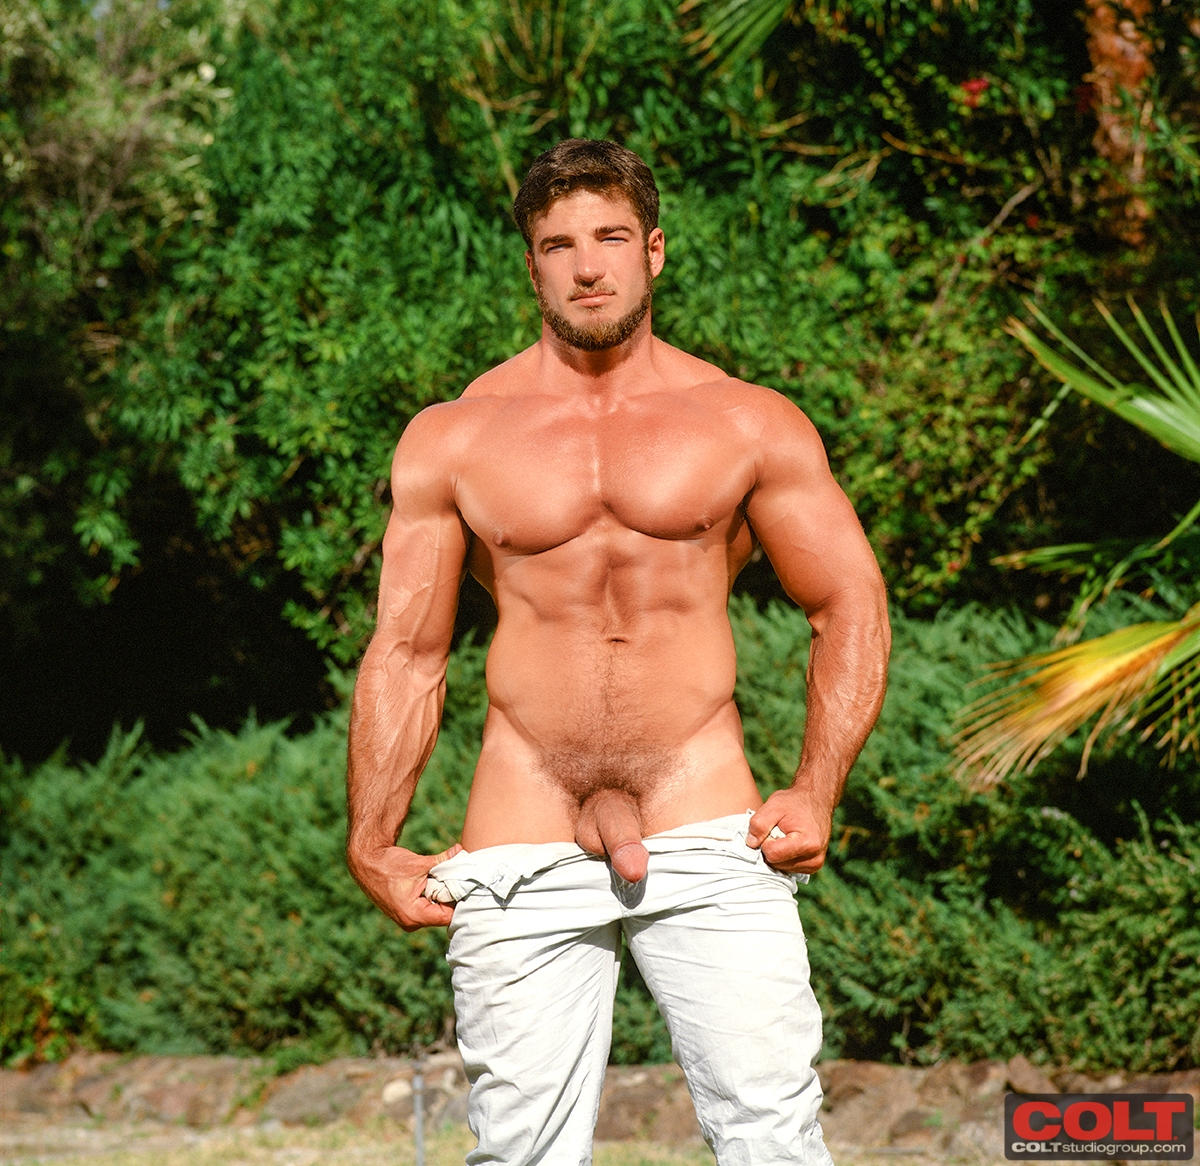 Porn Crush of the Day: COLT Studio's Rick Wolfmier | THE MAN CRUSH ...